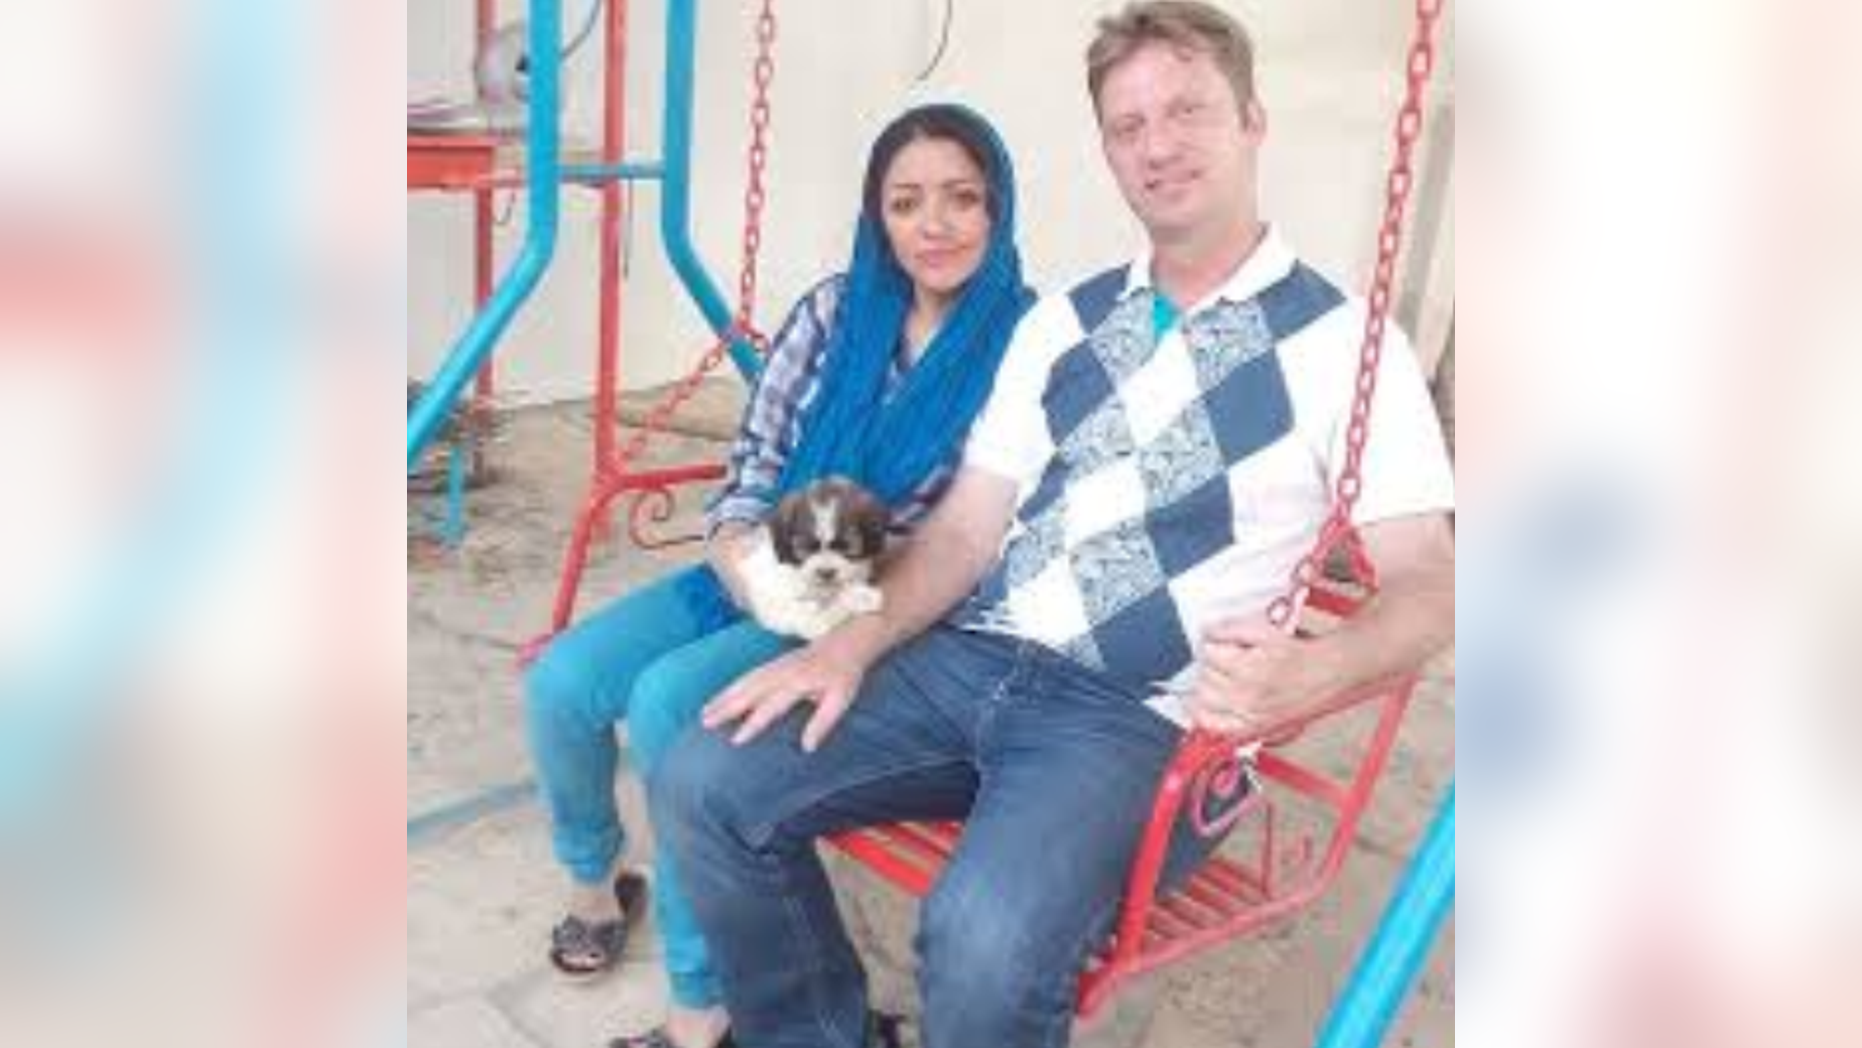 American Navy veteran Michael R. White, 46, was detained in Iran after visiting his Iranian girlfriend, whose identity remains unknown, his mother said.